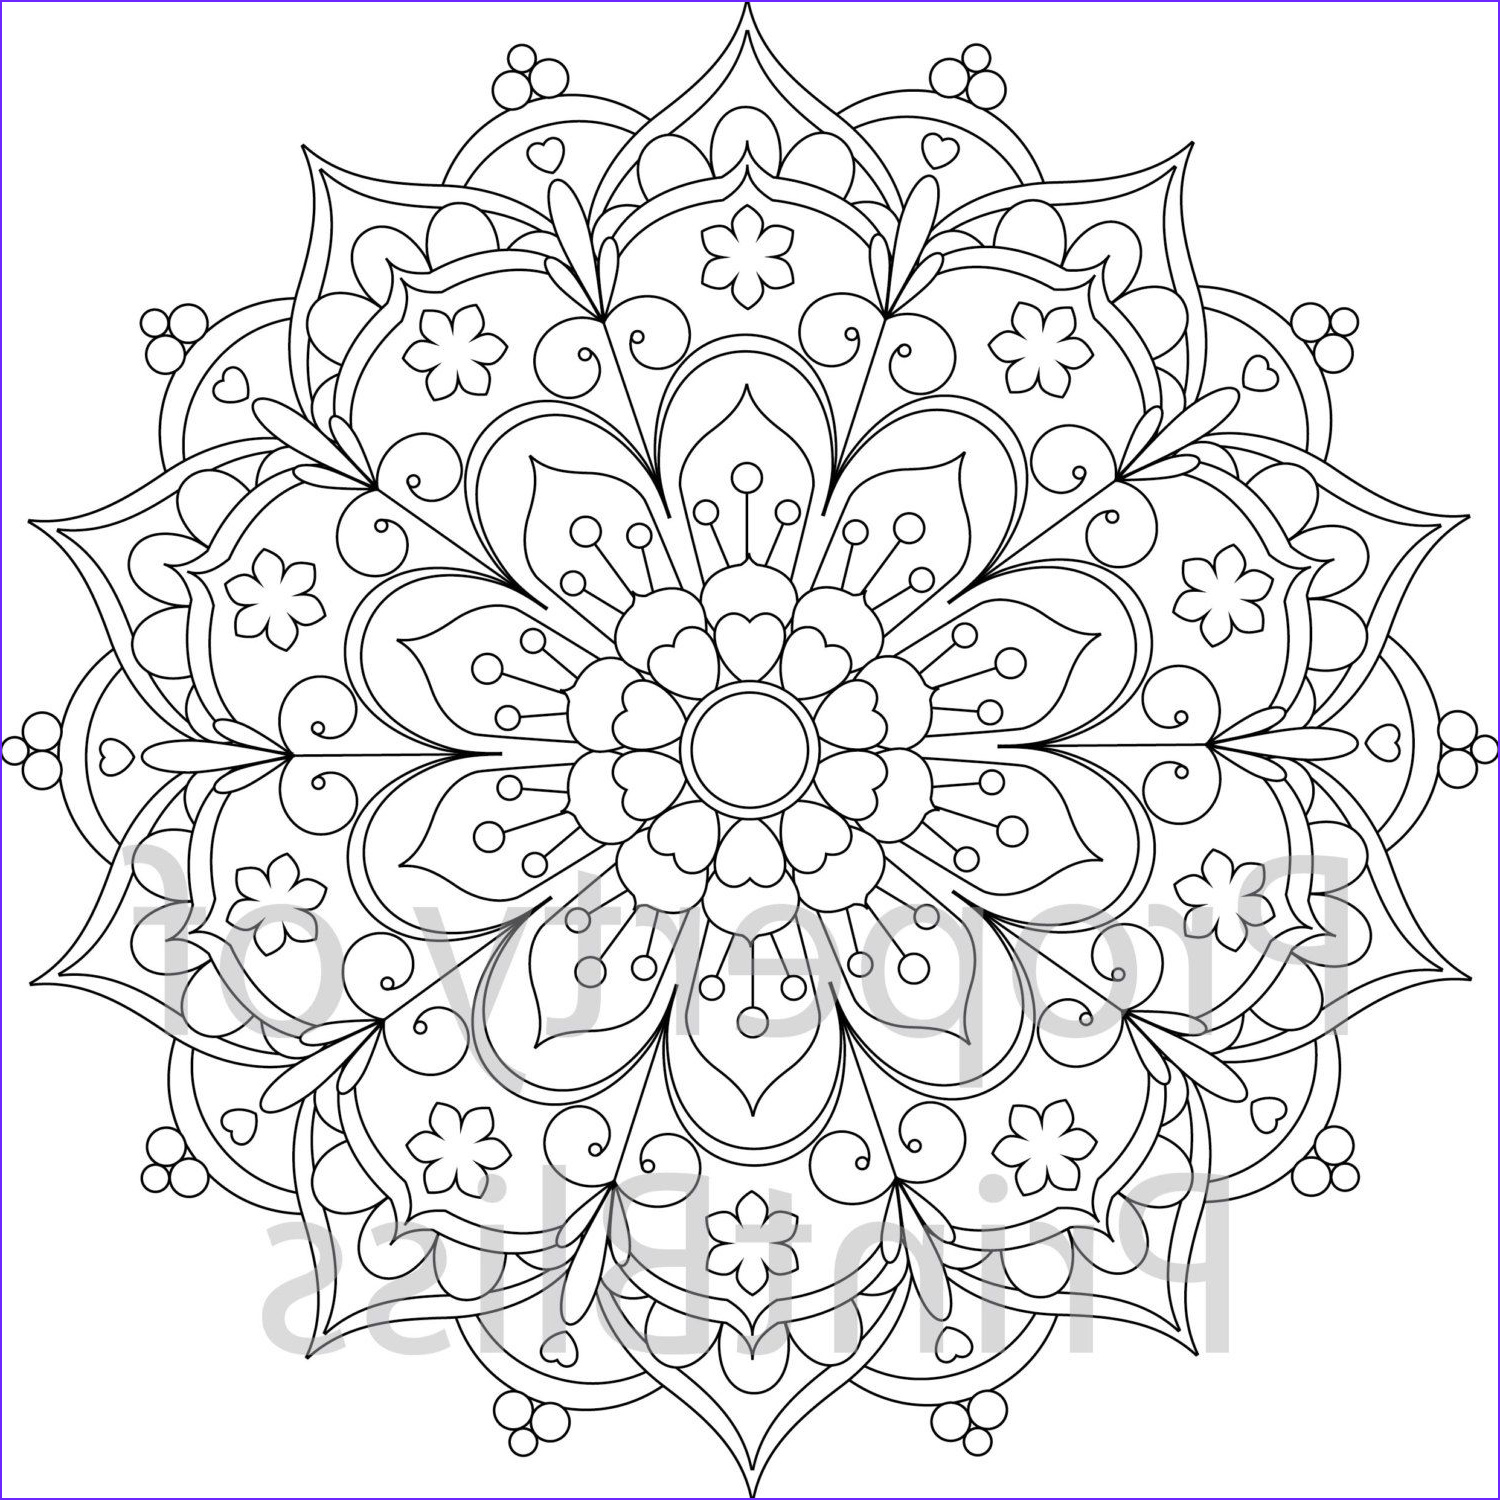 Free Mandala Coloring Pages Pdf Elegant Photography 25 Flower Mandala Printable Coloring Page by Printbliss